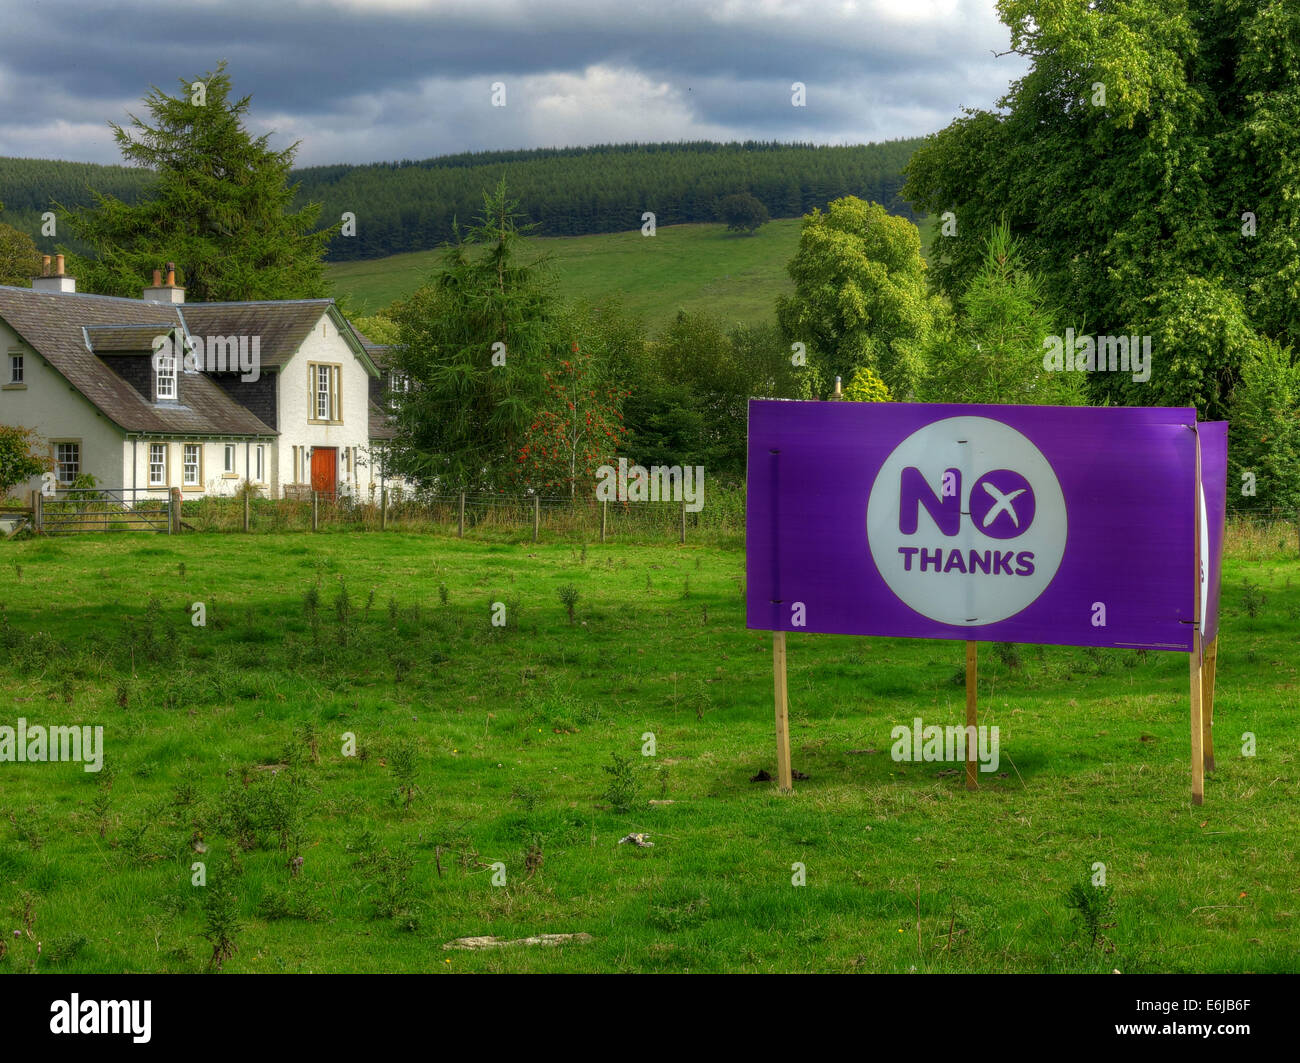 Sep,field,fields,rural,borders,decides,votes,ballot,vote,Scottish,Field,September,2014,Scotland,UK,debate,result,Scots,opinion,bettertogether,bright,sunshine,passion,Nothanks,publicity,Coulter,Mill,Village,Scottish,Borders,Scotland,UK A702 M75 A9 A1 sign,indyref,indyref,Alastair,Darling,Alex,Salmon,Salmond,powers,power,for,holyrood,Edinburgh,City,of,Glasgow City,of,Edinburgh Fife North,Lanarkshire South,Lanarkshire Aberdeenshire Highland City,of,Aberdeen West,Lothian Renfrewshire Falkirk Dumfries,and,Galloway Perth,and,Kinross City,of,Dundee North,Ayrshire East,Ayrshire Scottish,Borders South,Ayrshire Angus East,Dunbartonshire East,Lothian West,Dunbartonshire Stirling East,Renfrewshire Argyll,and,Bute Moray Midlothian Inverclyde Clackmannanshire Na,h-Eileanan,Siar,(Western,Isles) Shetland,Islands Orkney,Islands,CNES,Scottish,SNP,independance party,independence,indyref,referendum,2nd,second,Brexit,#Brexit,hotpixuk,@hotpixuk